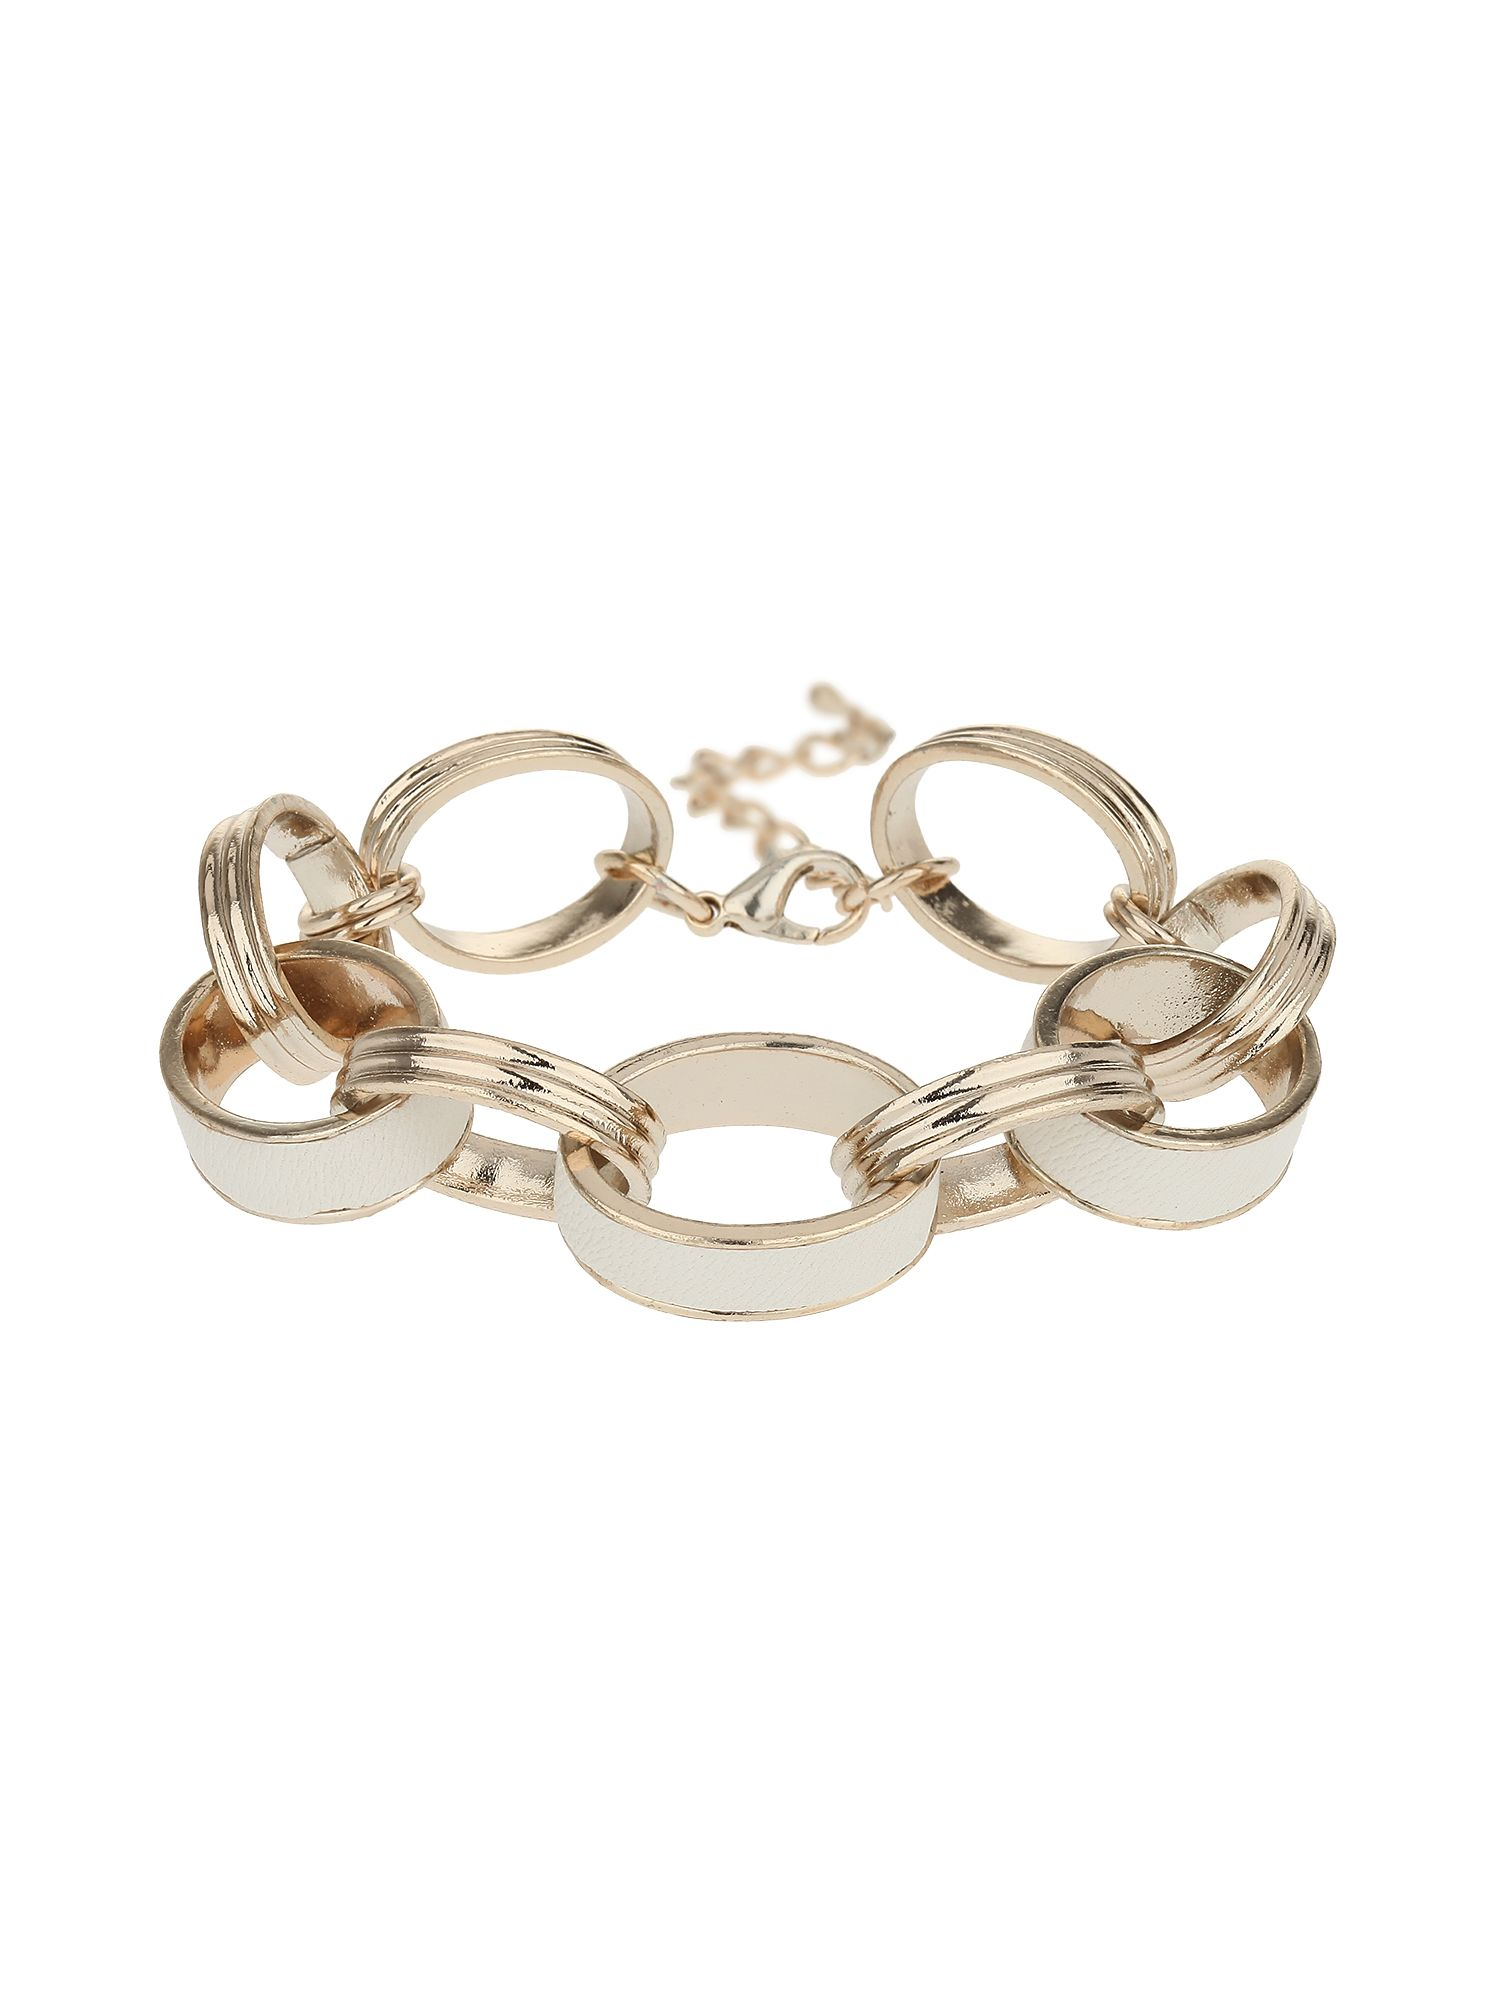 Leather metal rings bracelet